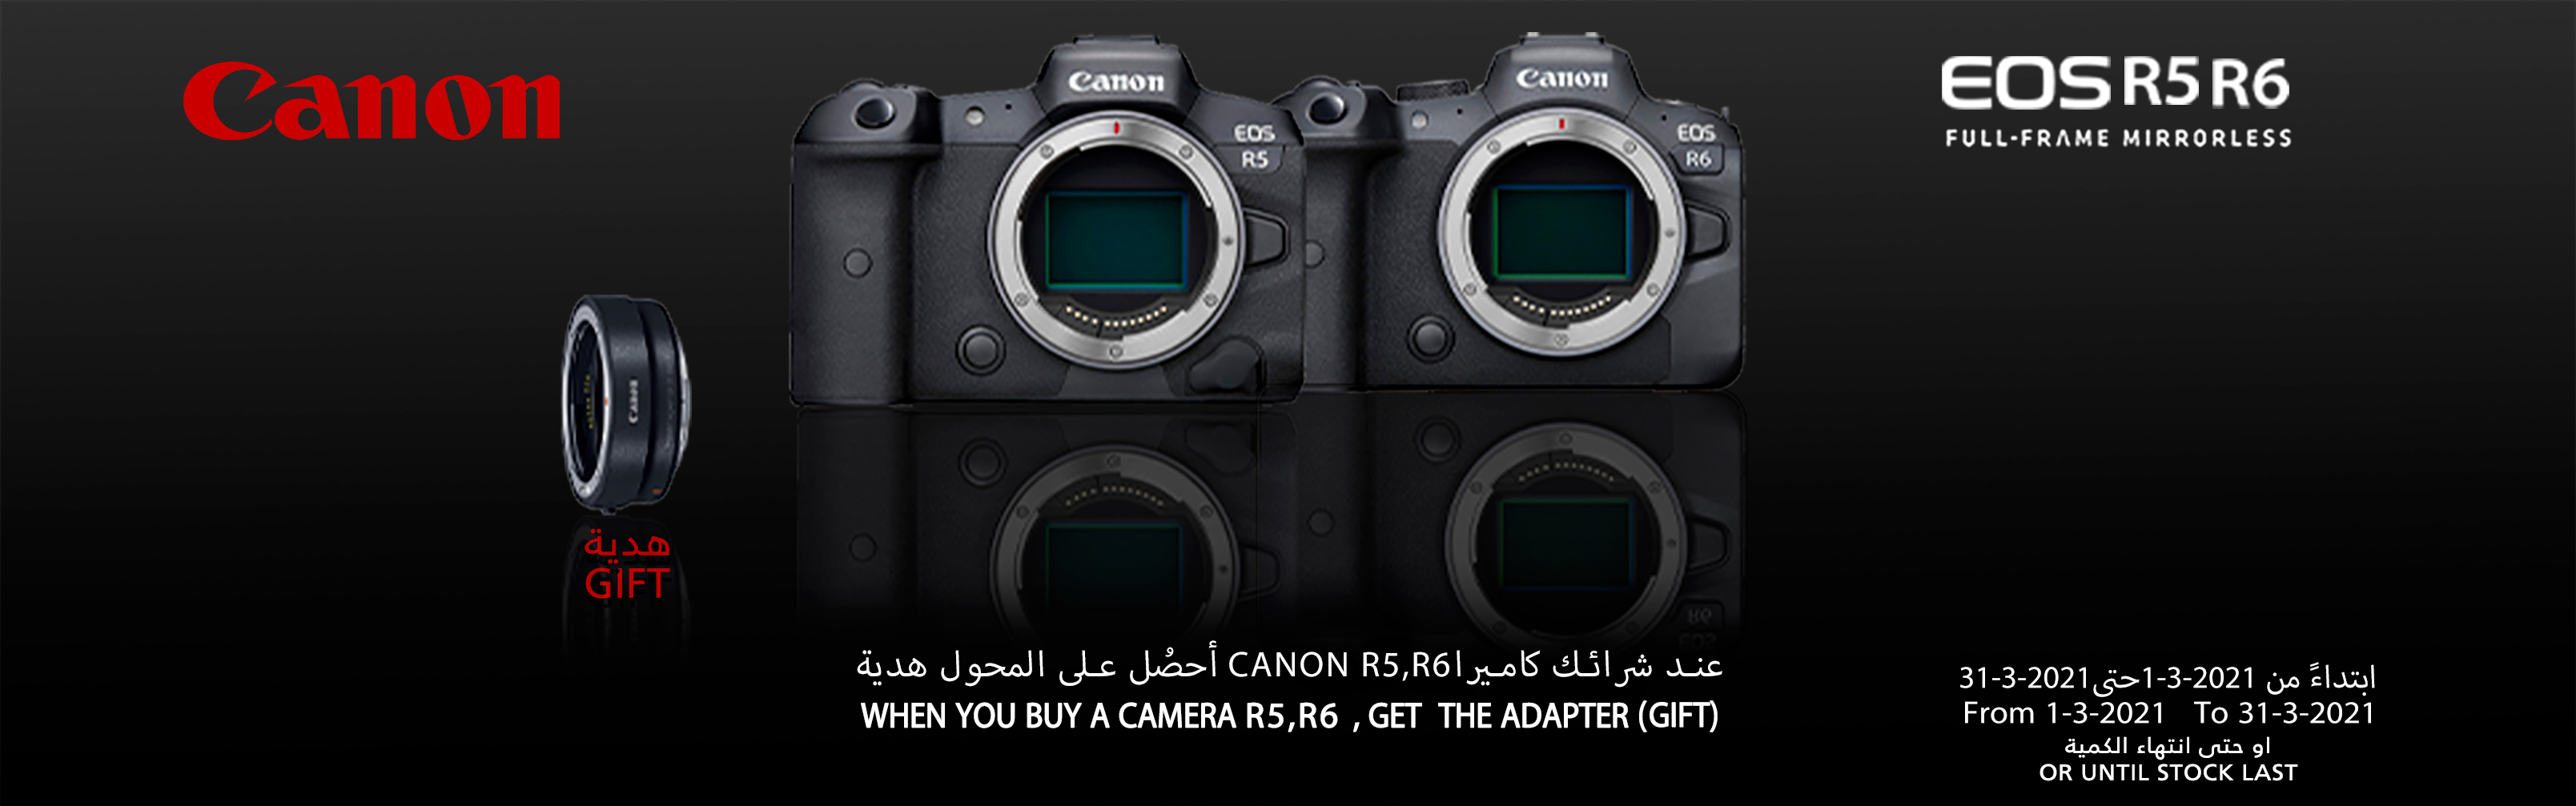 canon r5 and canon r6 offer